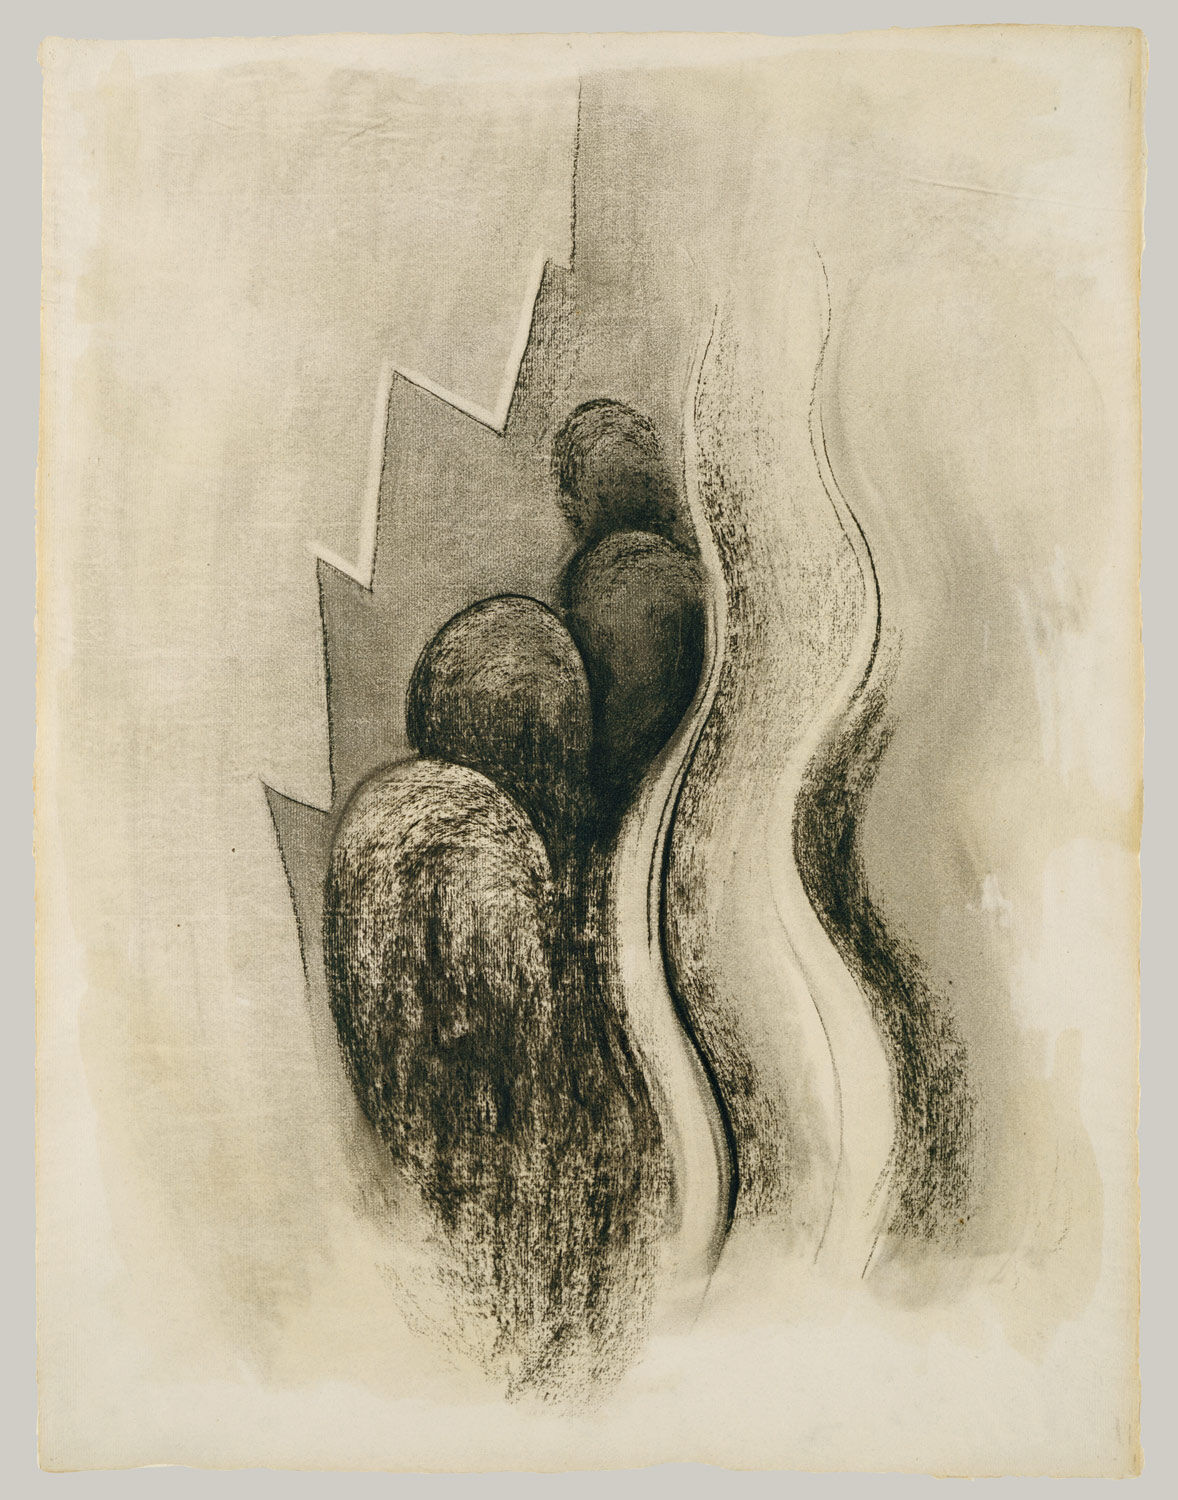 Georgia O'Keeffe, Drawing XIII, 1915. Image via Wikimedia Commons.